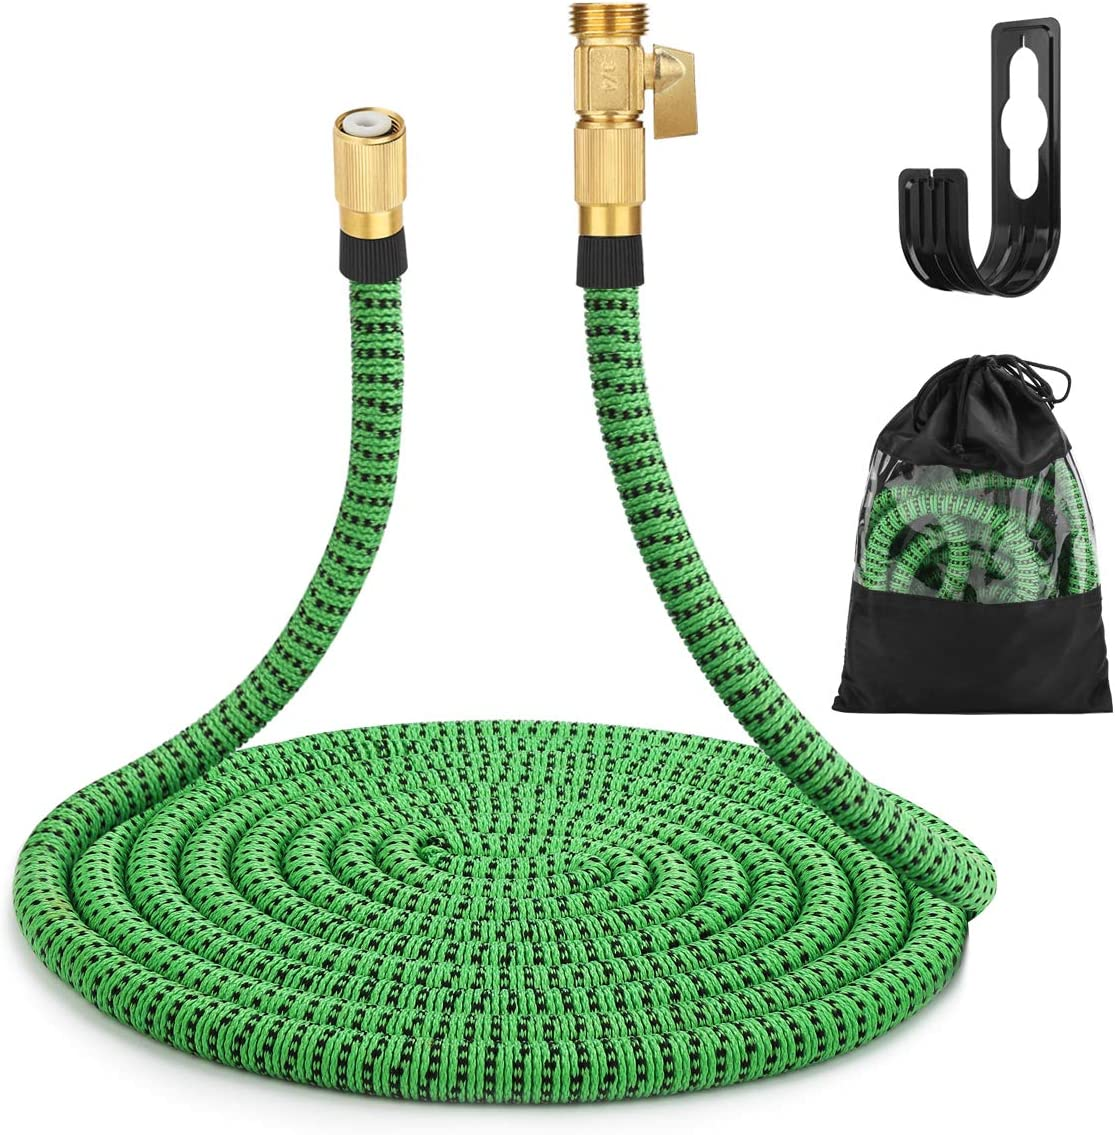 Gobetter favorite Expandable Garden Hose 50 Indianapolis Mall ft Triple Core Latex 3 With